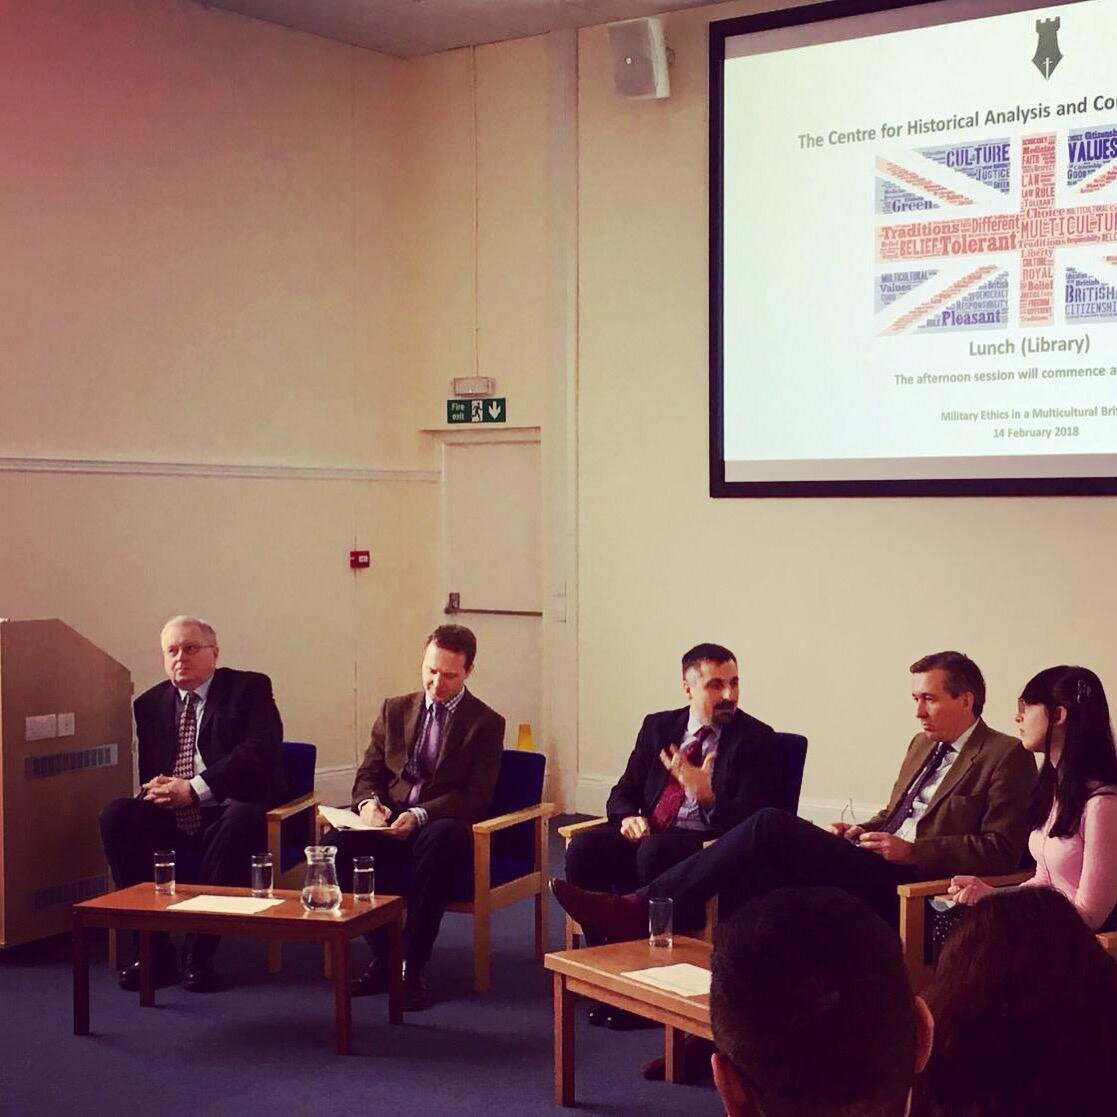 Chairing a day of discussions on military ethics in multicultural Britain